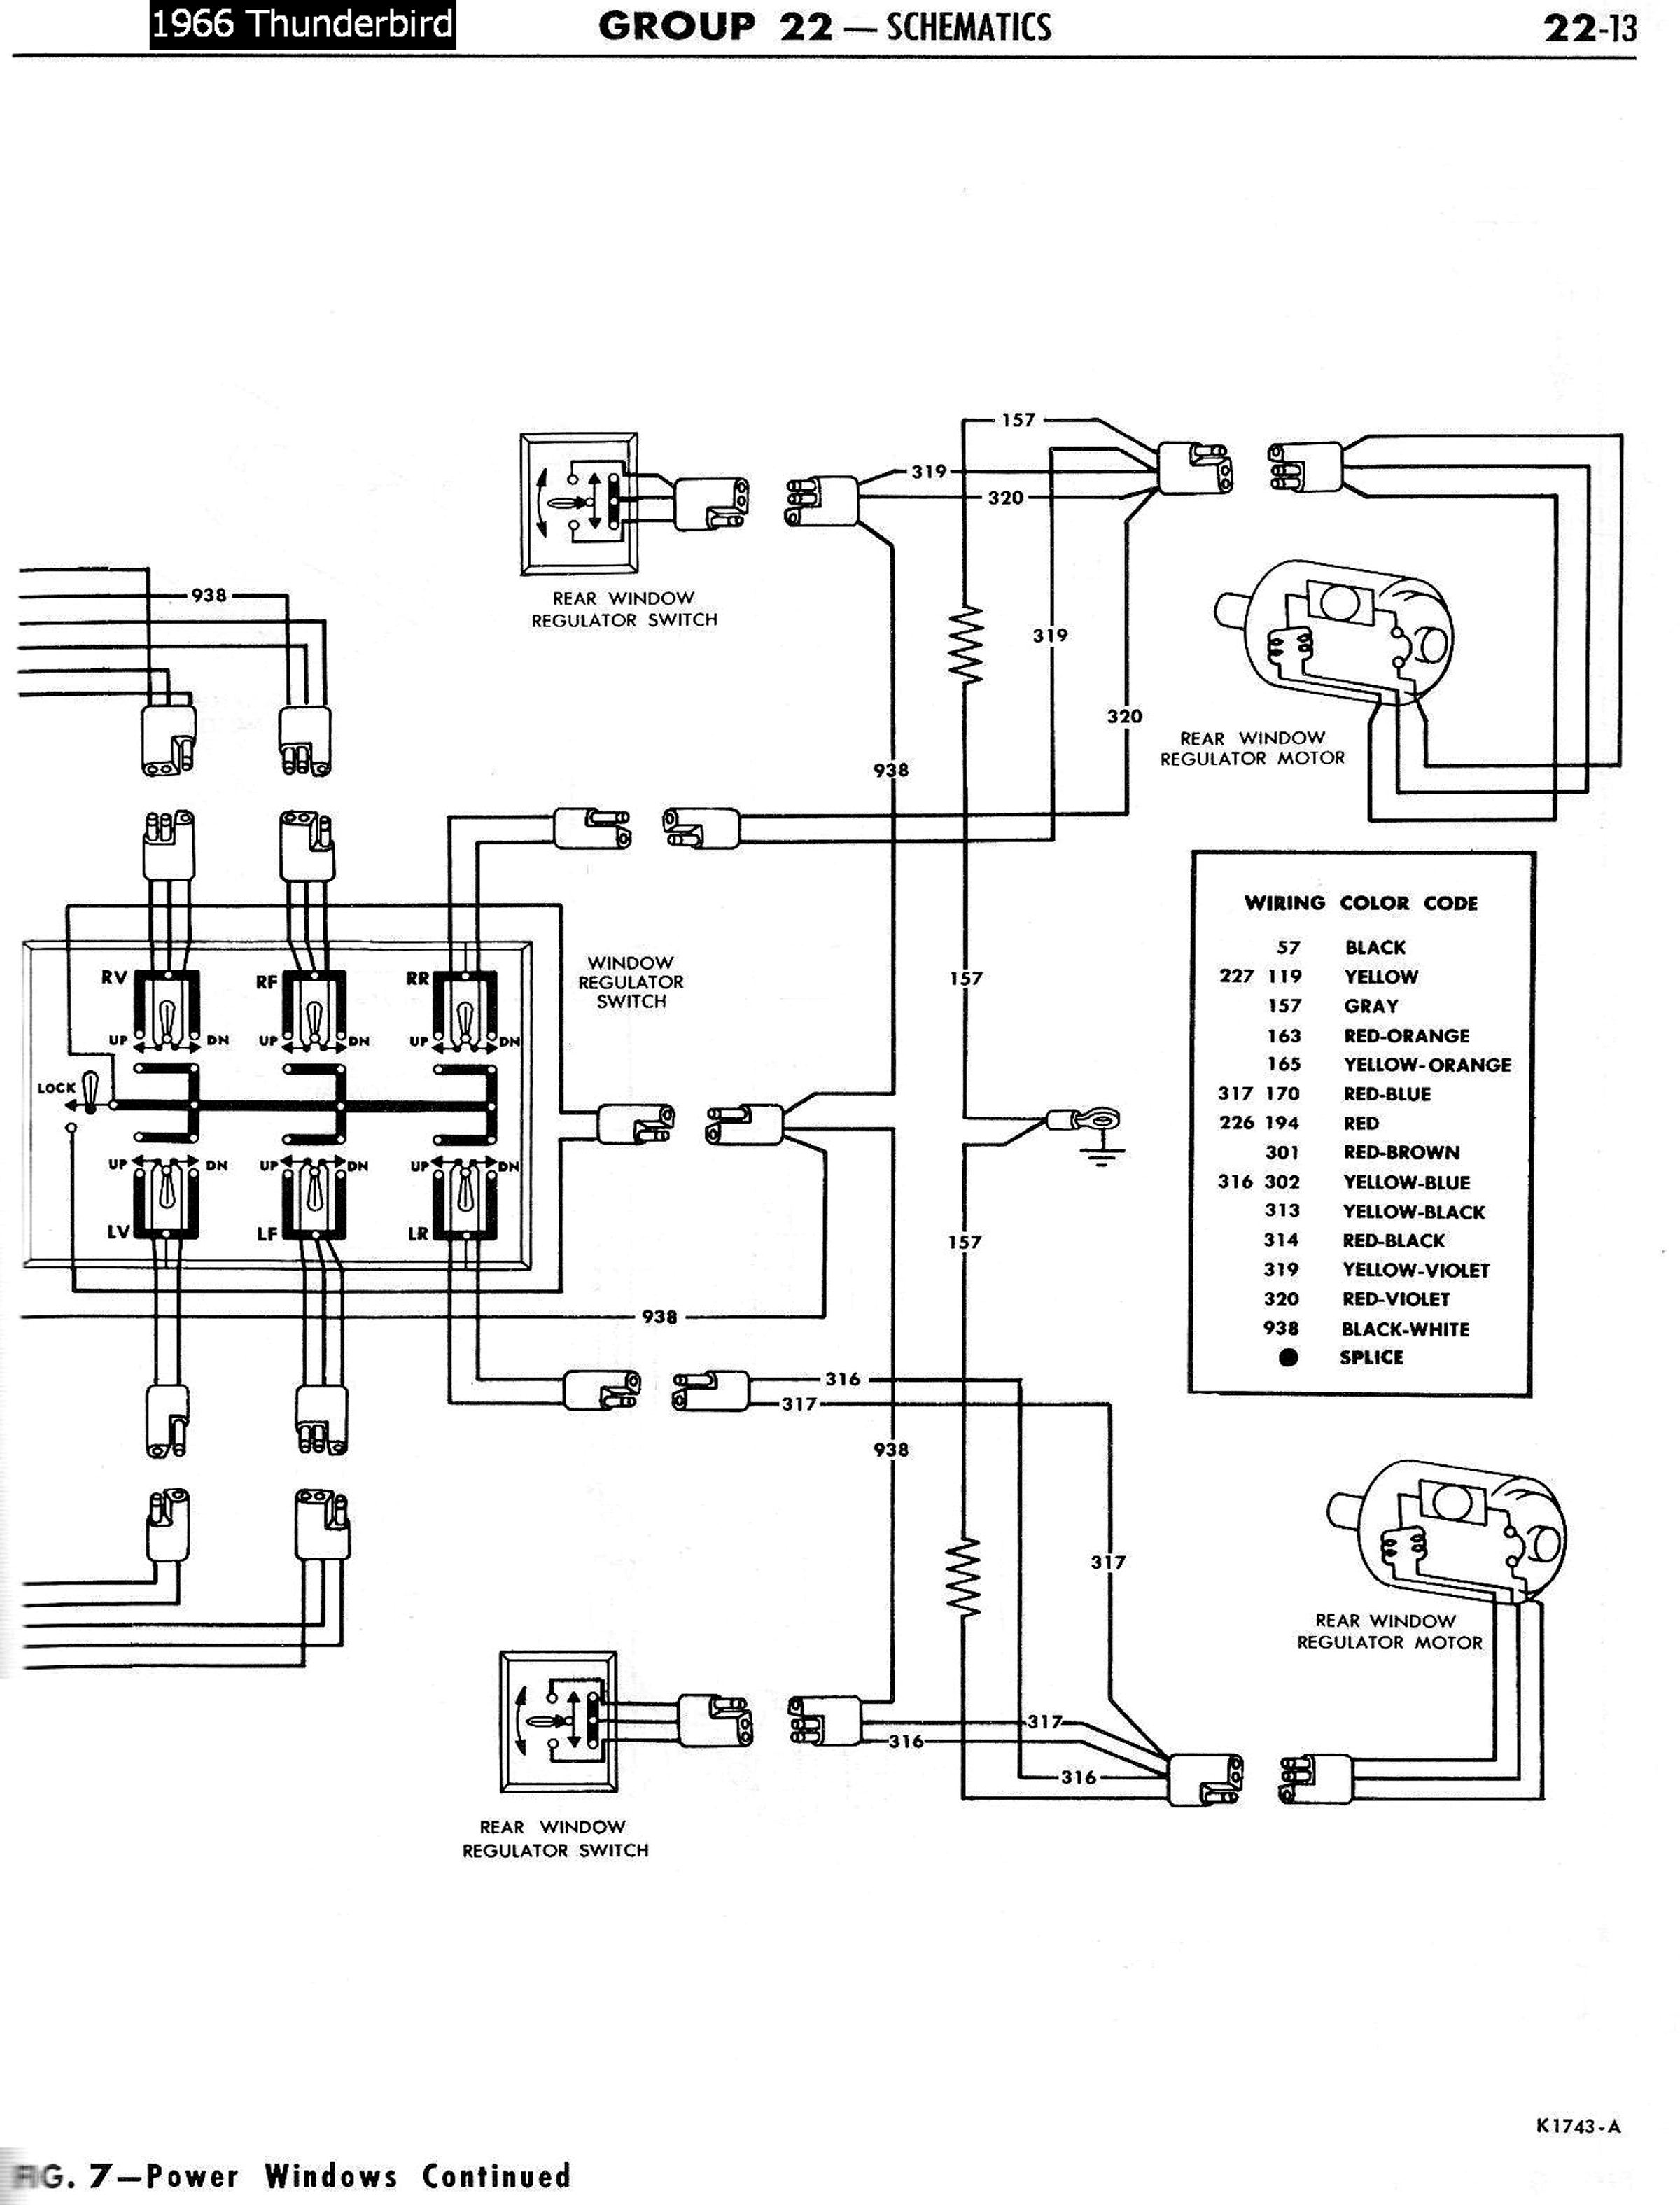 Thunderbird Wiring Diagram Additionally 1956 Ford Truck Wiring ... on pickup truck diagram, 1968 ford truck radio, 1968 ford truck cab mount, 1968 ford truck parts, 1968 ford truck brochure, 1968 ford truck exhaust, 1968 ford truck air cleaner, 1968 ford truck shop manual, truck parts diagram, 93 ford relay diagram, 1968 ford truck transmission, 1968 ford truck wire schematic drawing, 1968 ford truck carburetor, ford truck engine diagram, ford truck rear brake diagram, 1968 ford truck wheels,